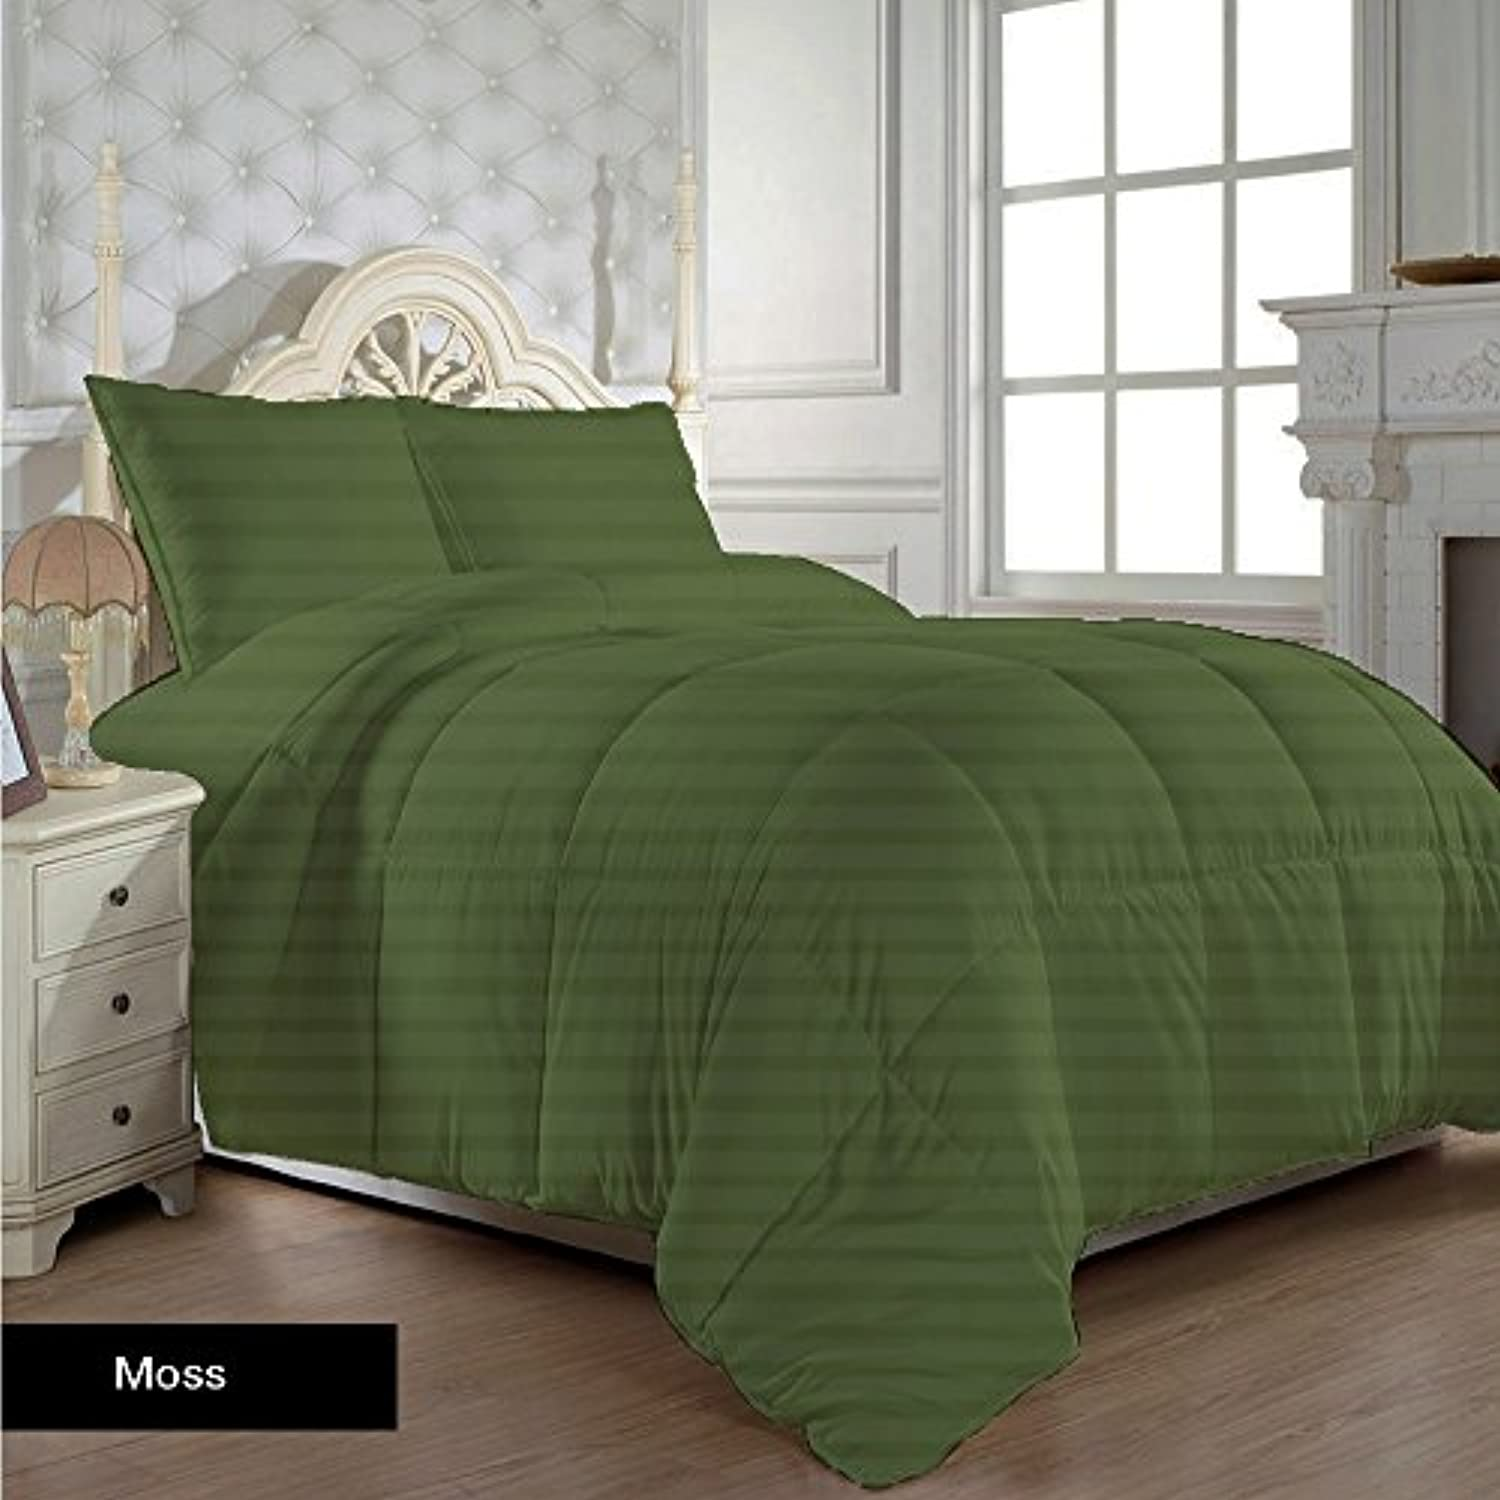 Sheets More Heavy 1200tc Tissu 1pi Egrave Ce Tour De Lit Ndash